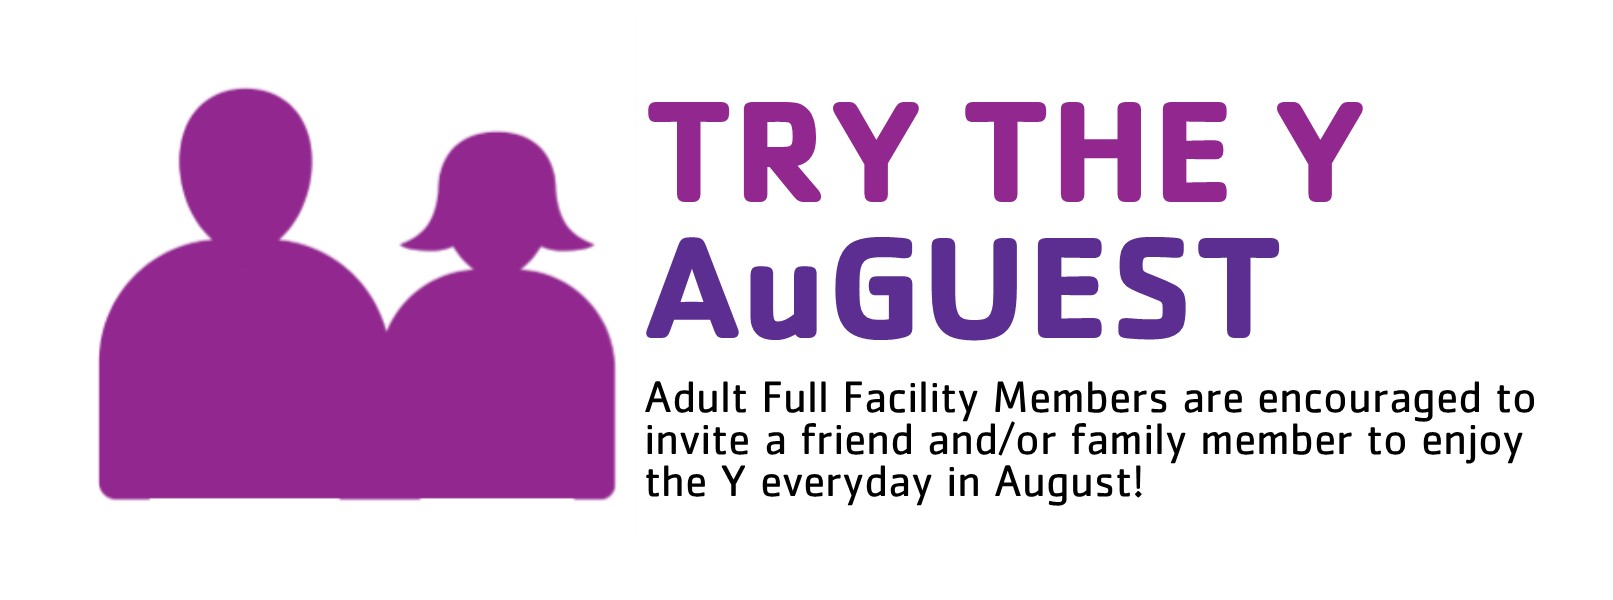 Try the Y AuGuest